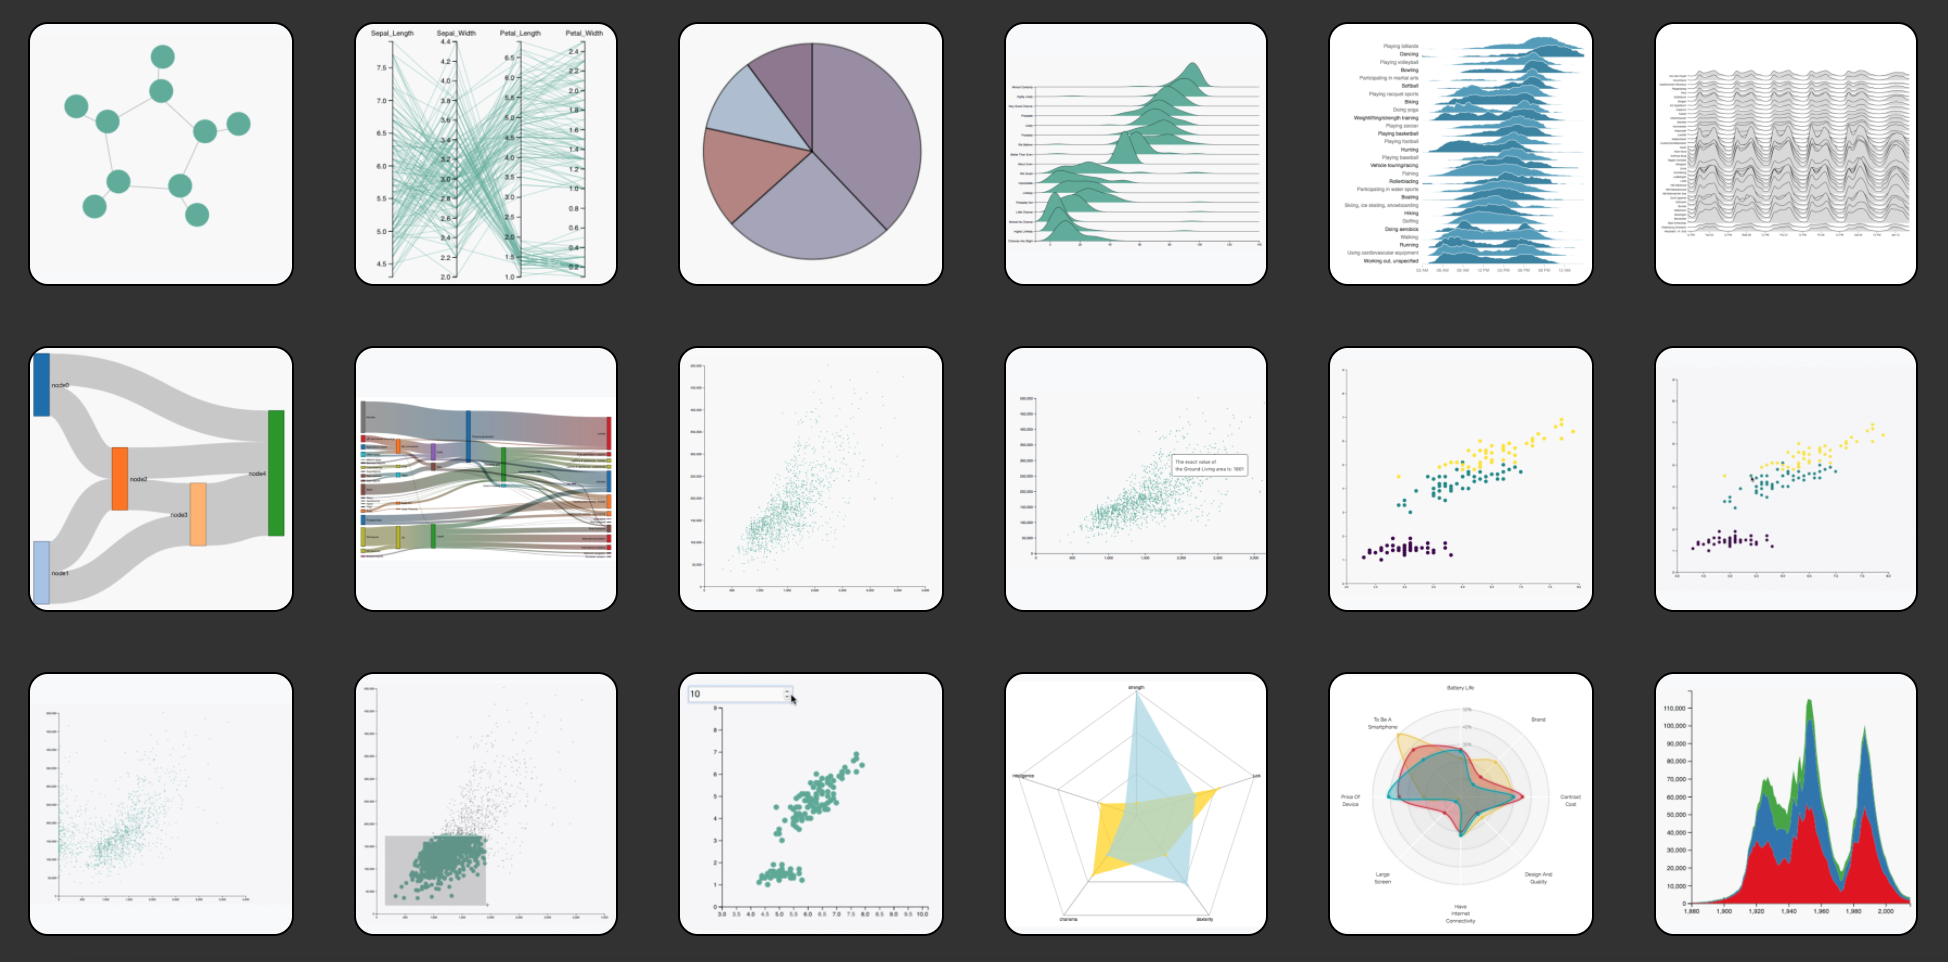 D3.js visualization examples